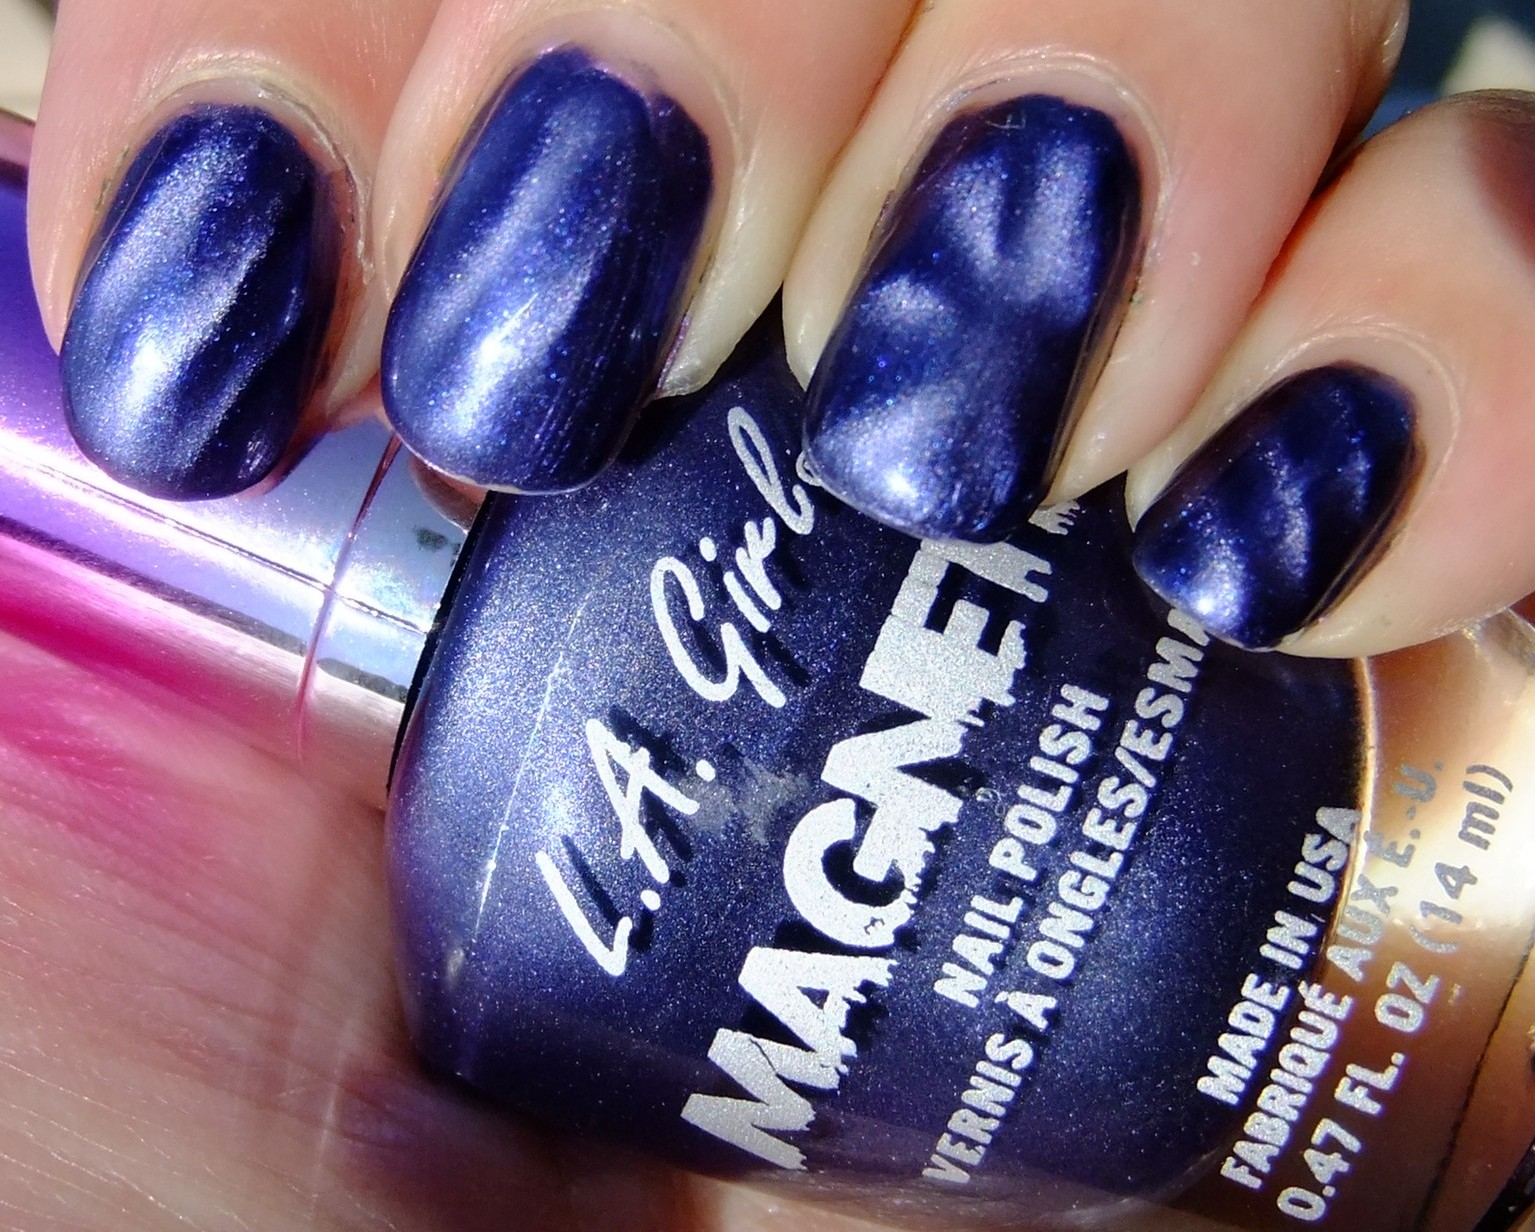 Willa\'s Shiny Tips: L.A. Girls - Magnetic Polish is AWESOME!